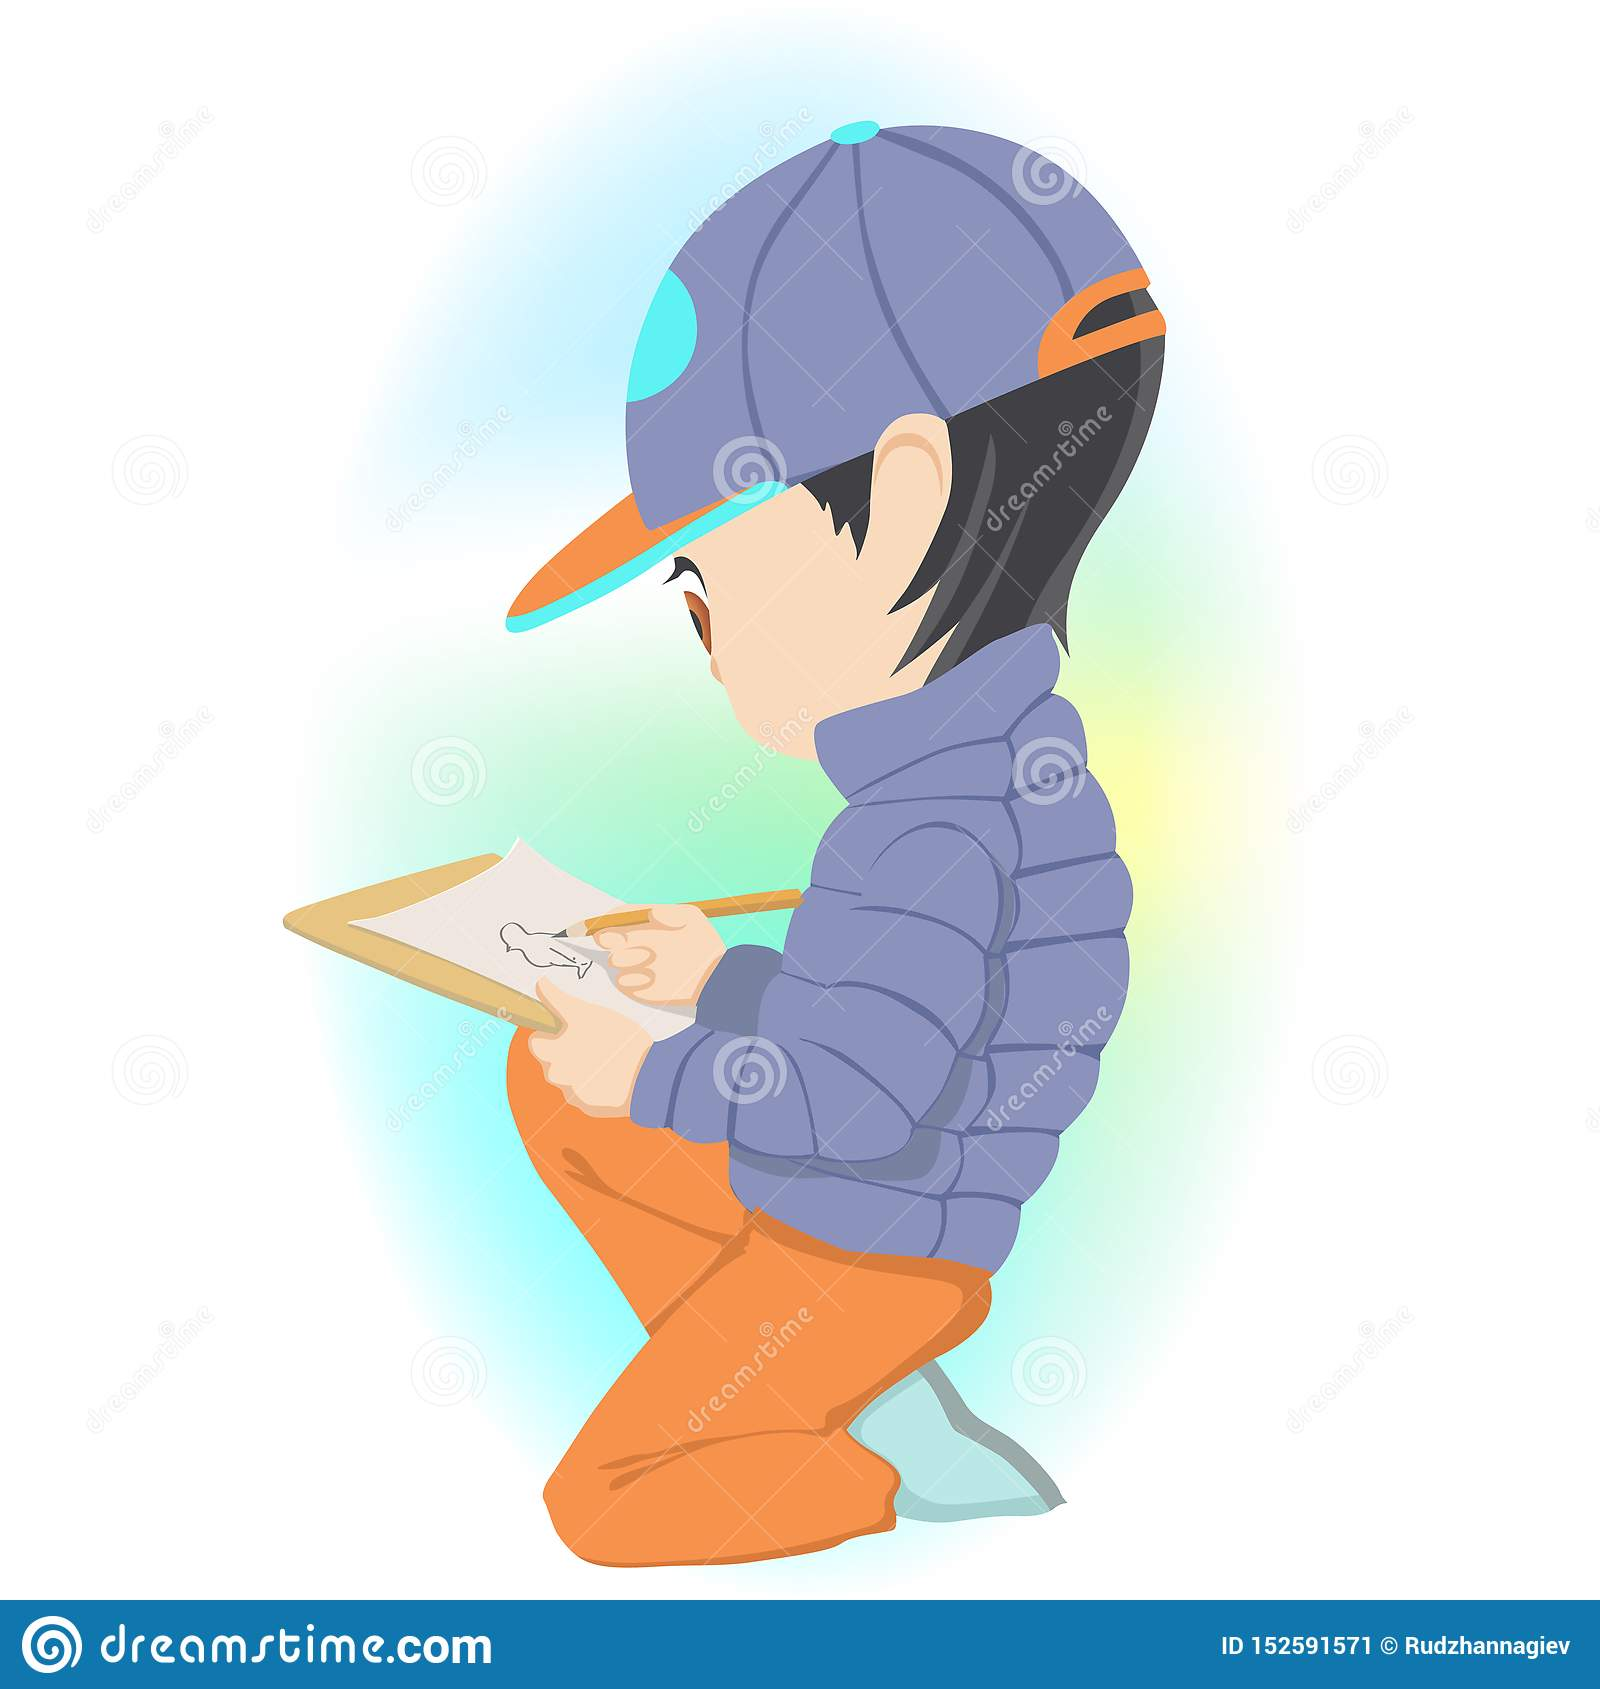 Little boy sitting and drawing picture on paper